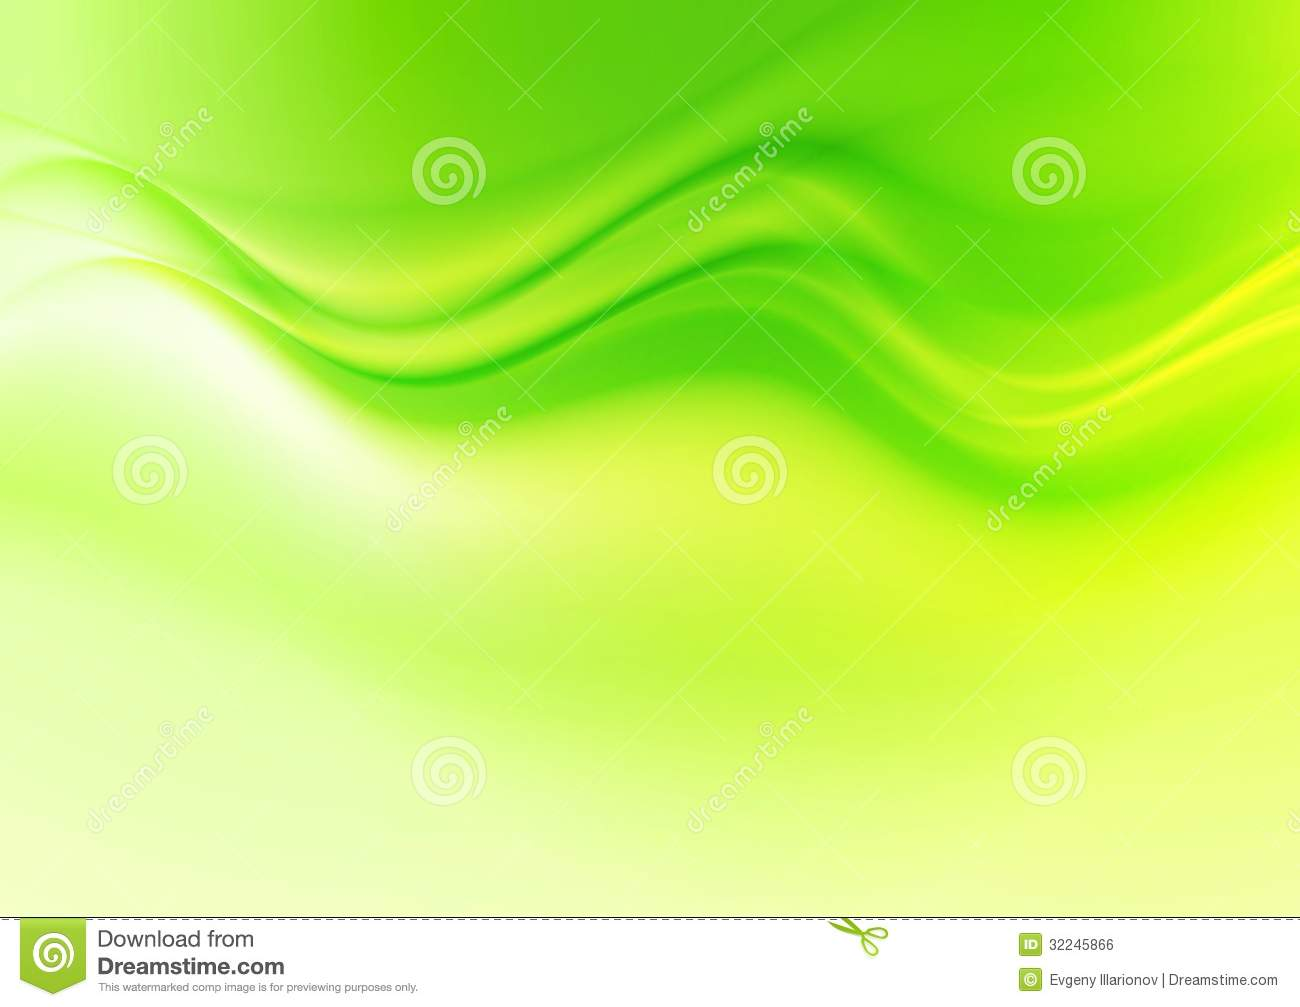 light green wallpaper designs - photo #12